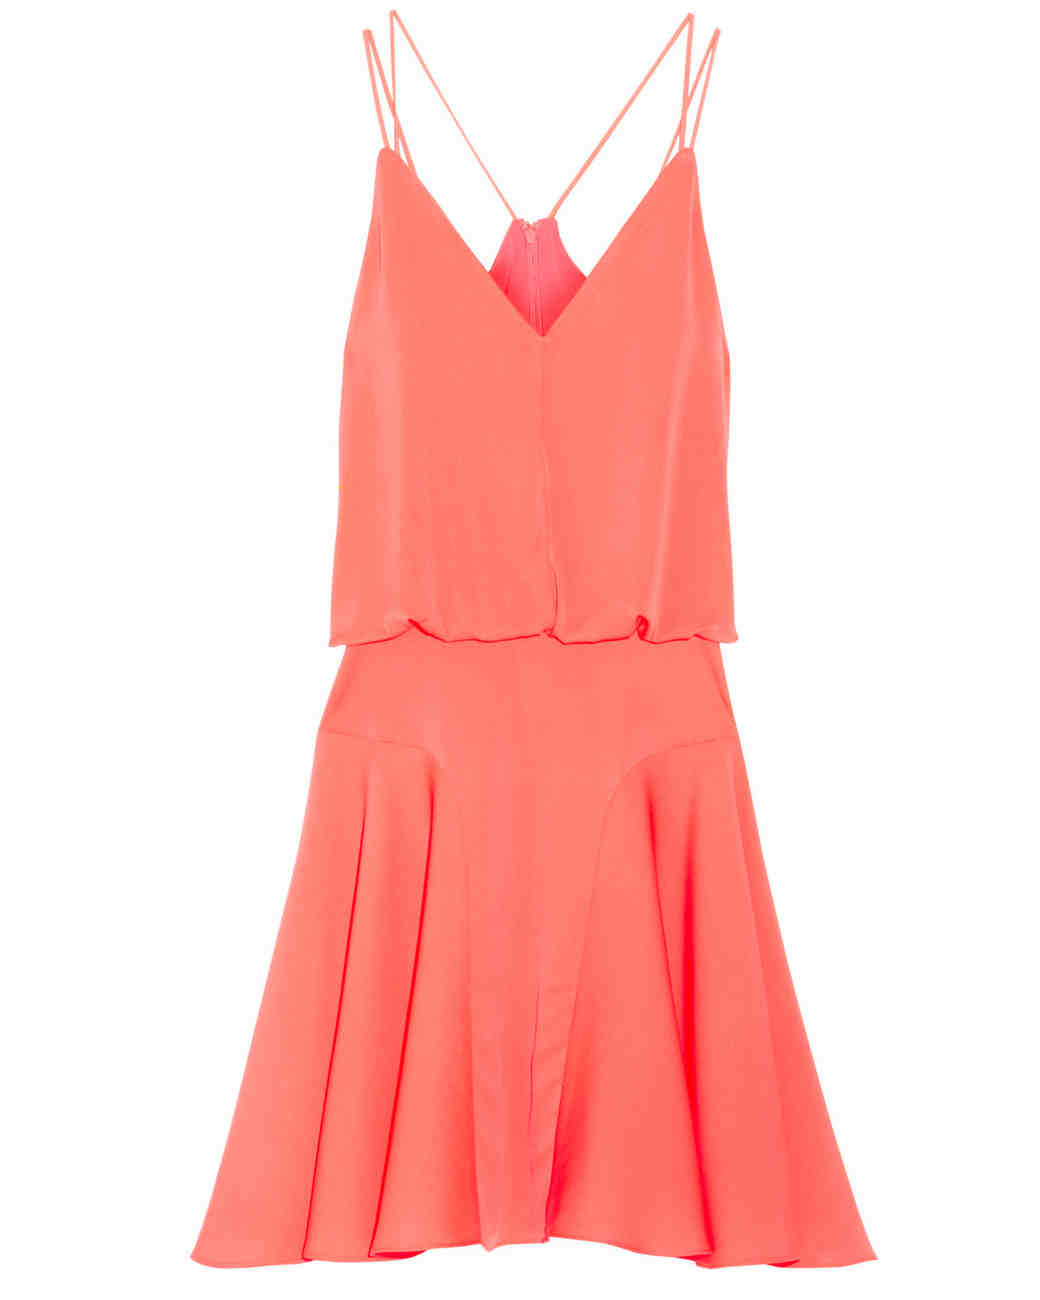 guest-wedding-outfits-milly-neon-mini-dress-0614.jpg